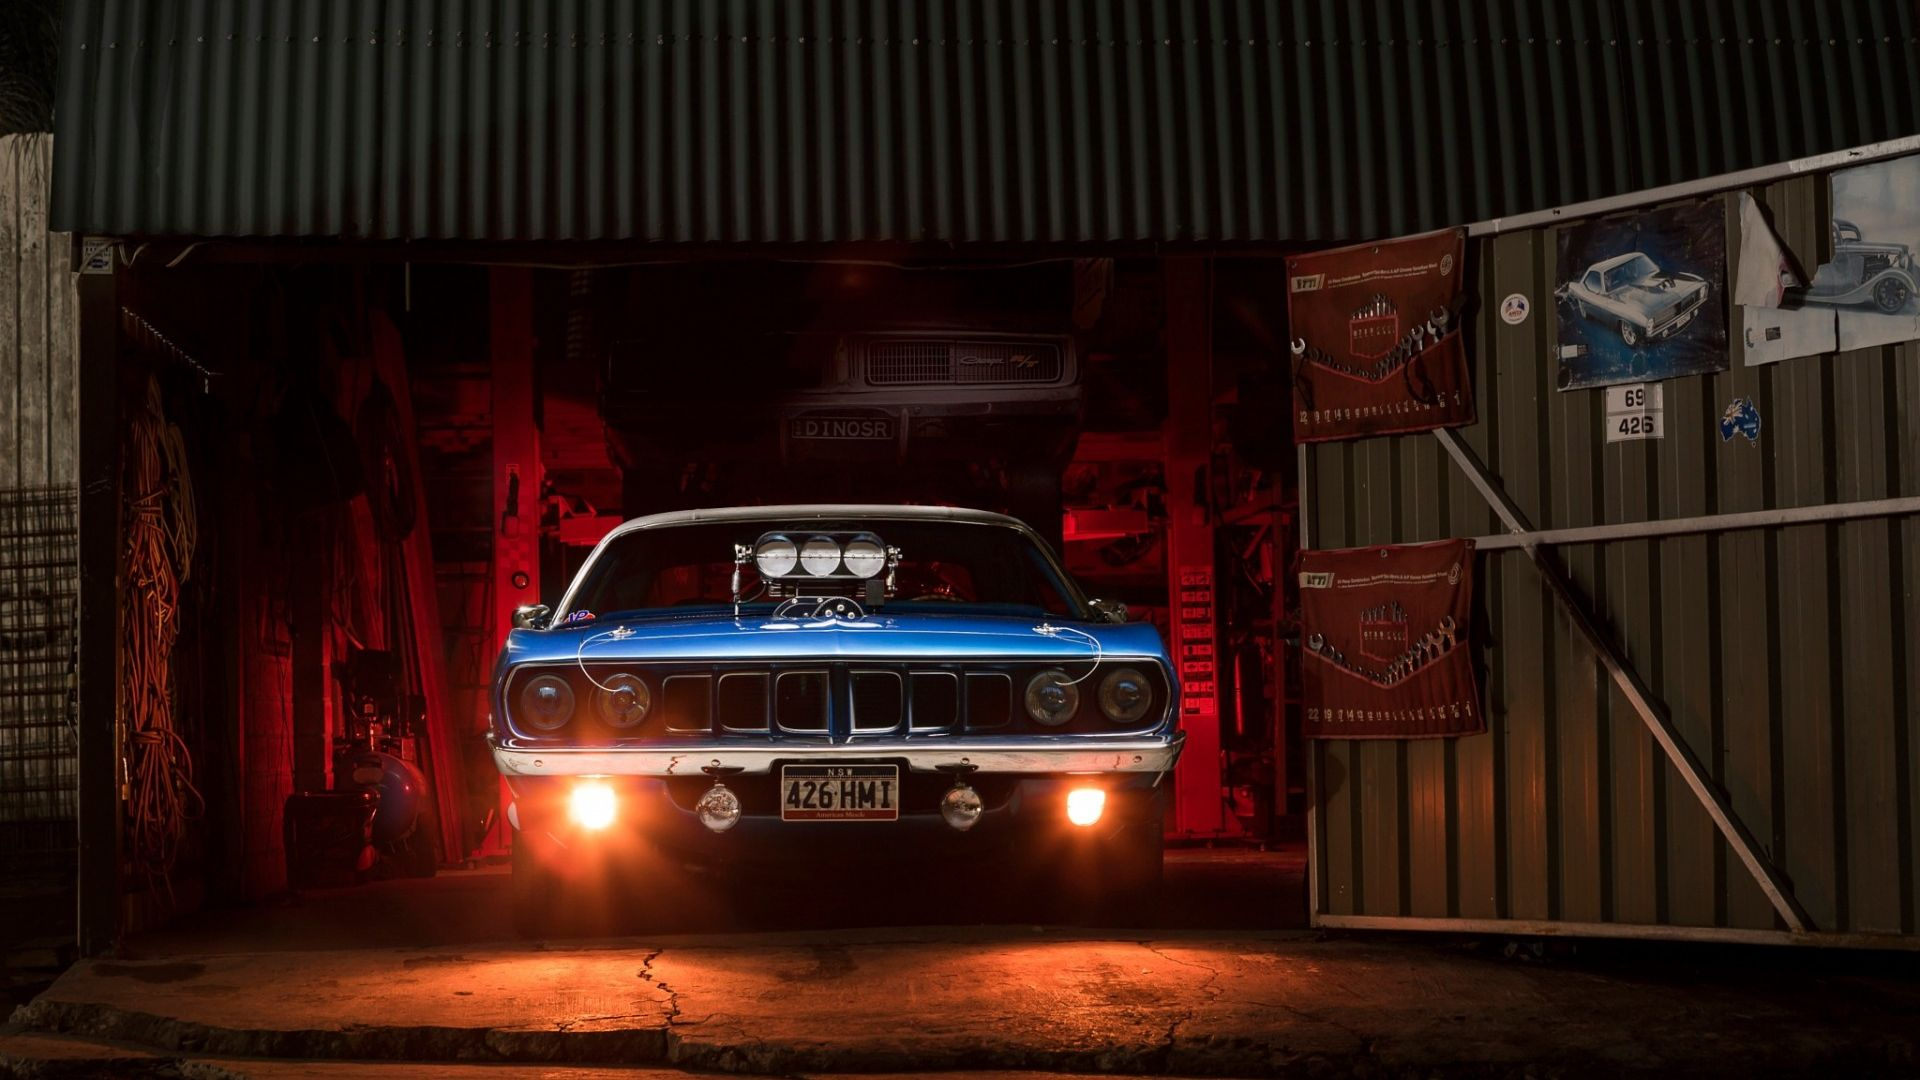 4k Car Wallpapers For Pc Desktop Wallpaper Plymouth Barracuda Classic Muscle Car